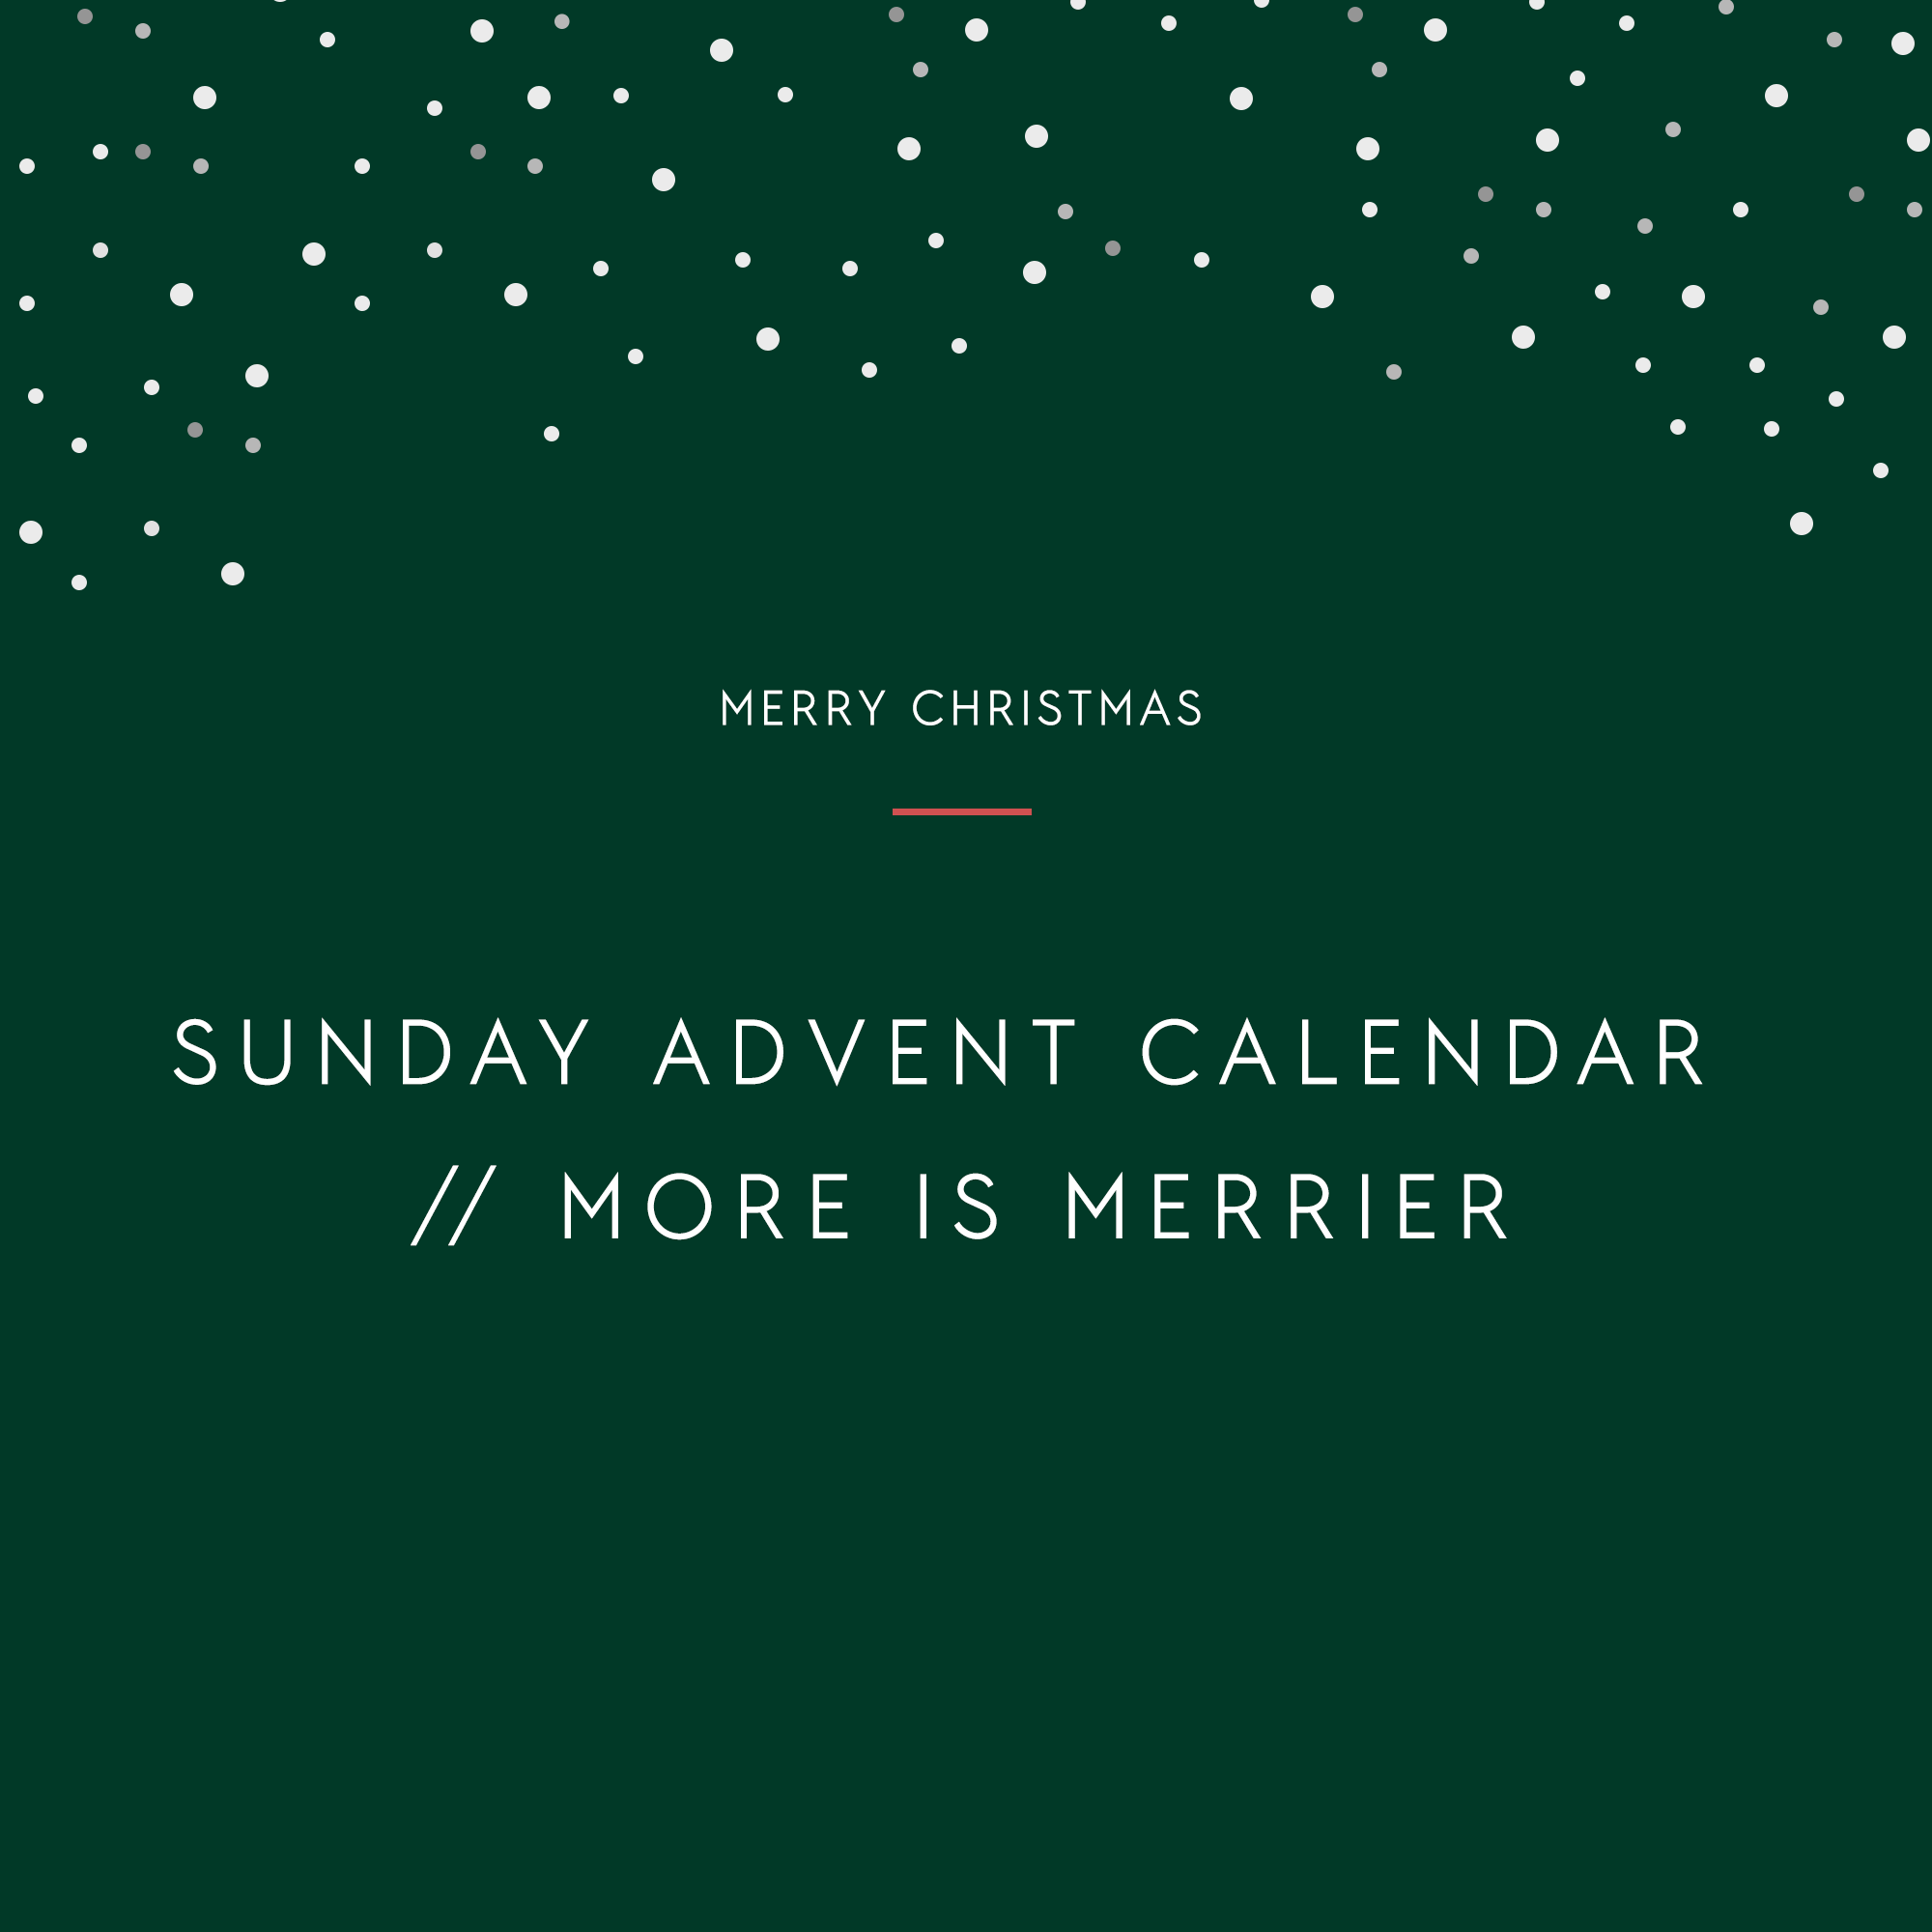 SUNDAY ADVENT CALENDAR 2019 // MORE IS MERRIER